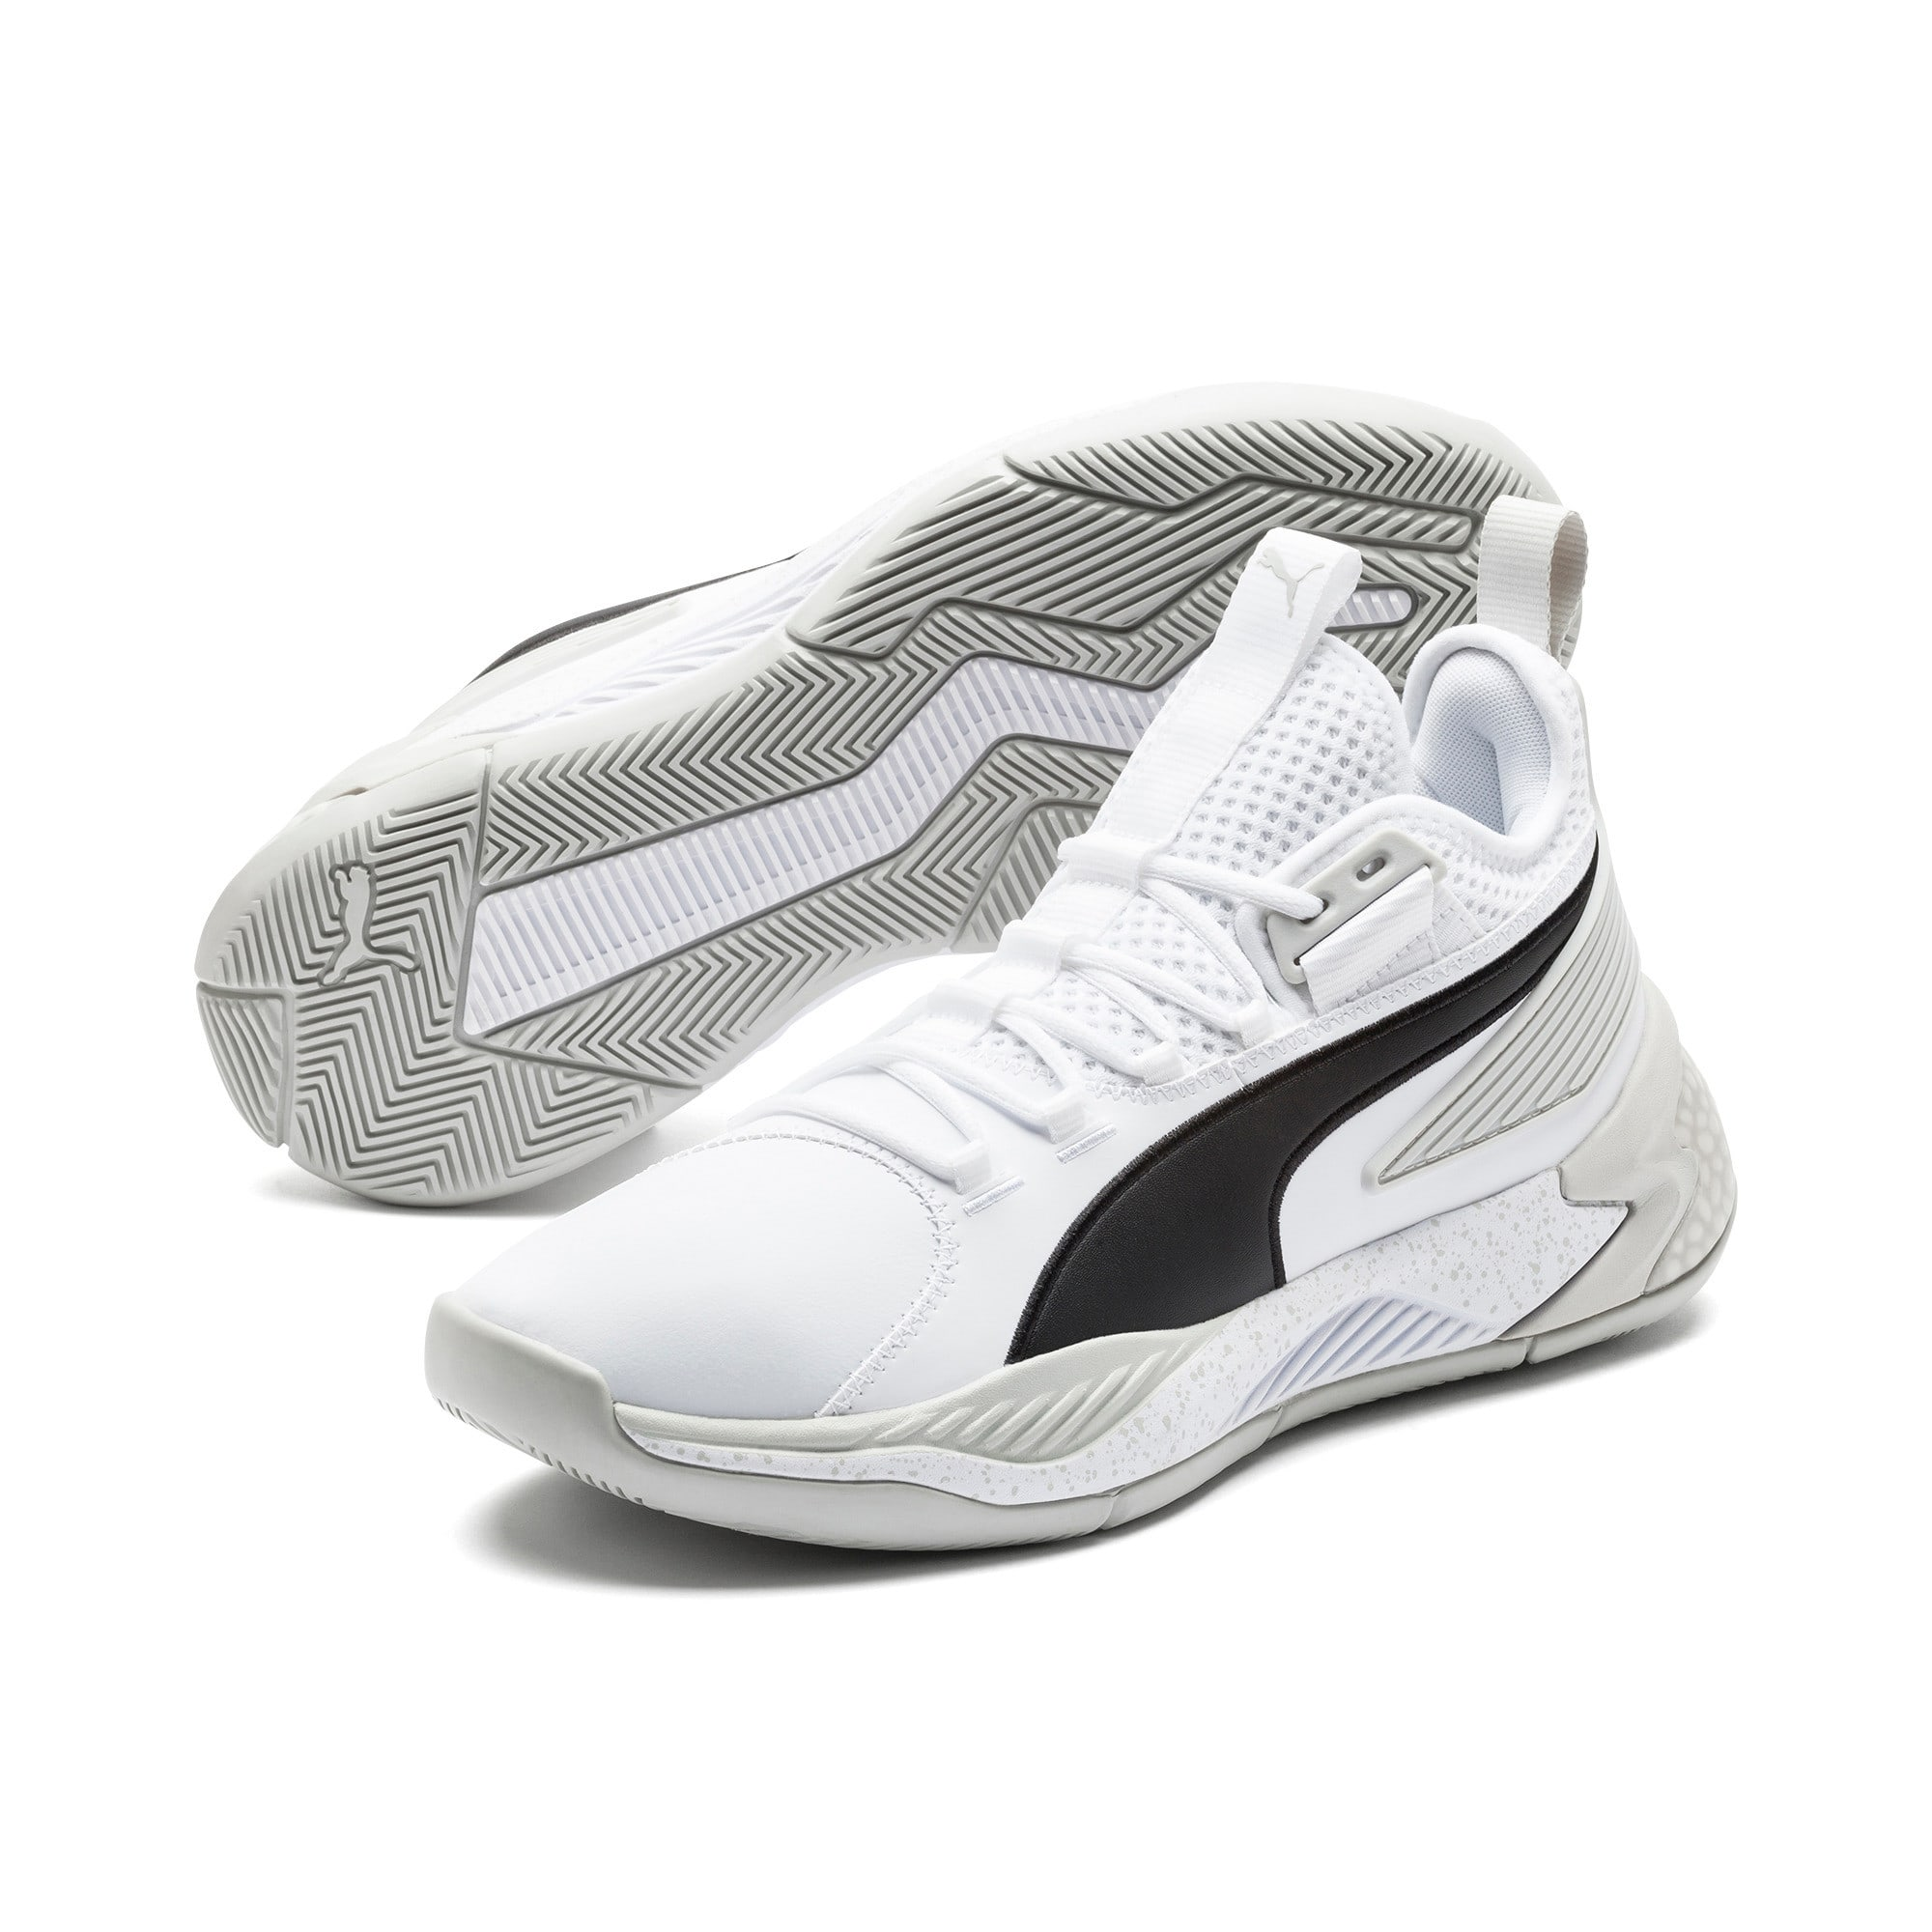 Thumbnail 2 of Uproar Core Herren Basketballschuhe, Puma White-Glacier Gray, medium